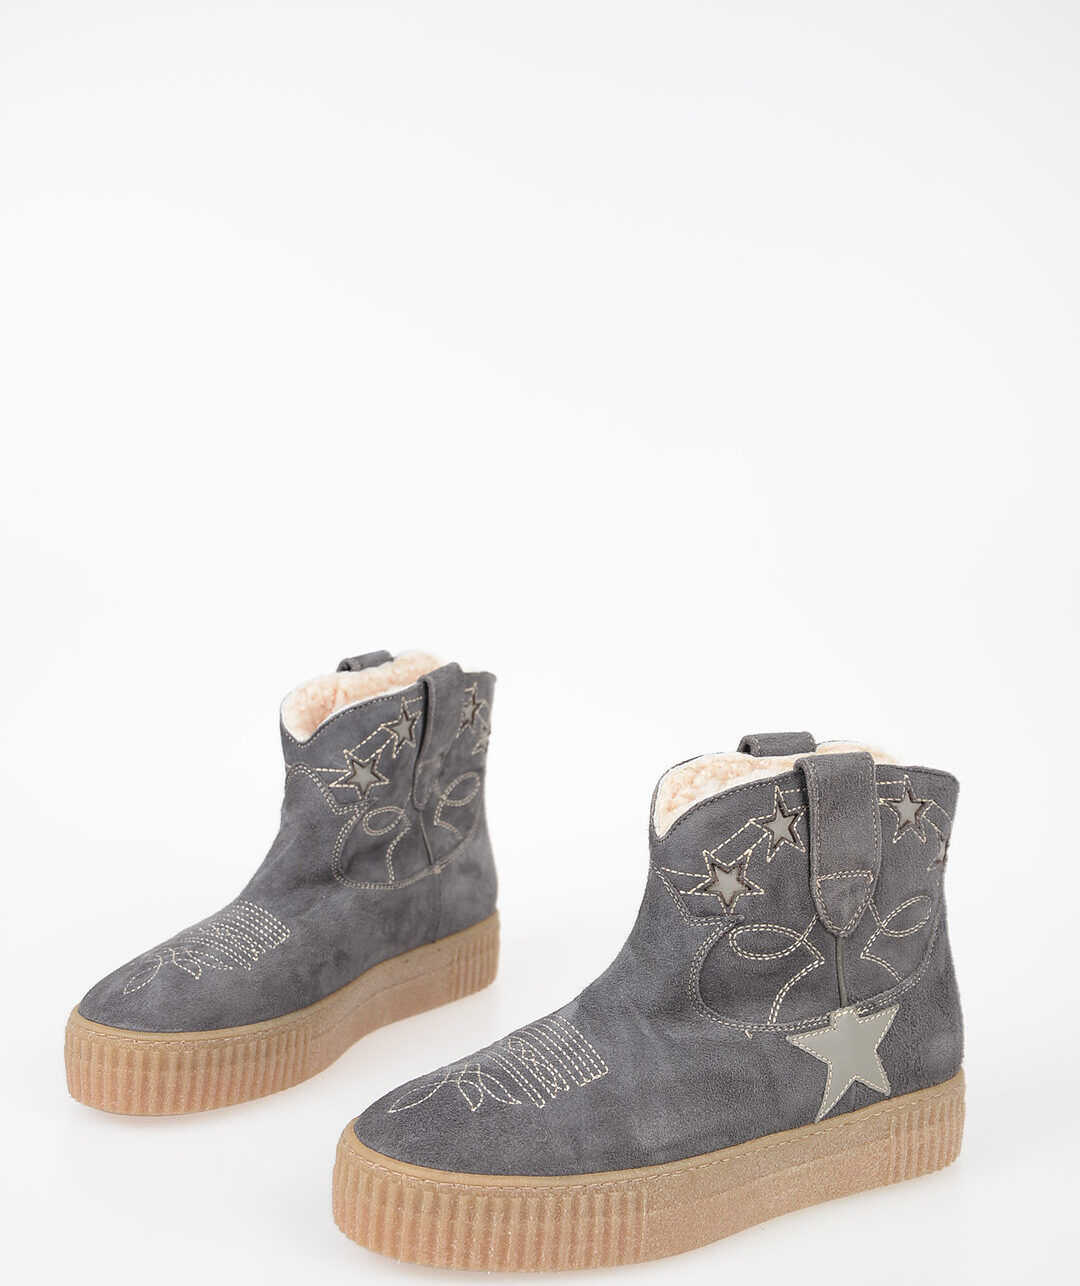 Golden Goose Suede Leather Ankle Boots DARK GRAY